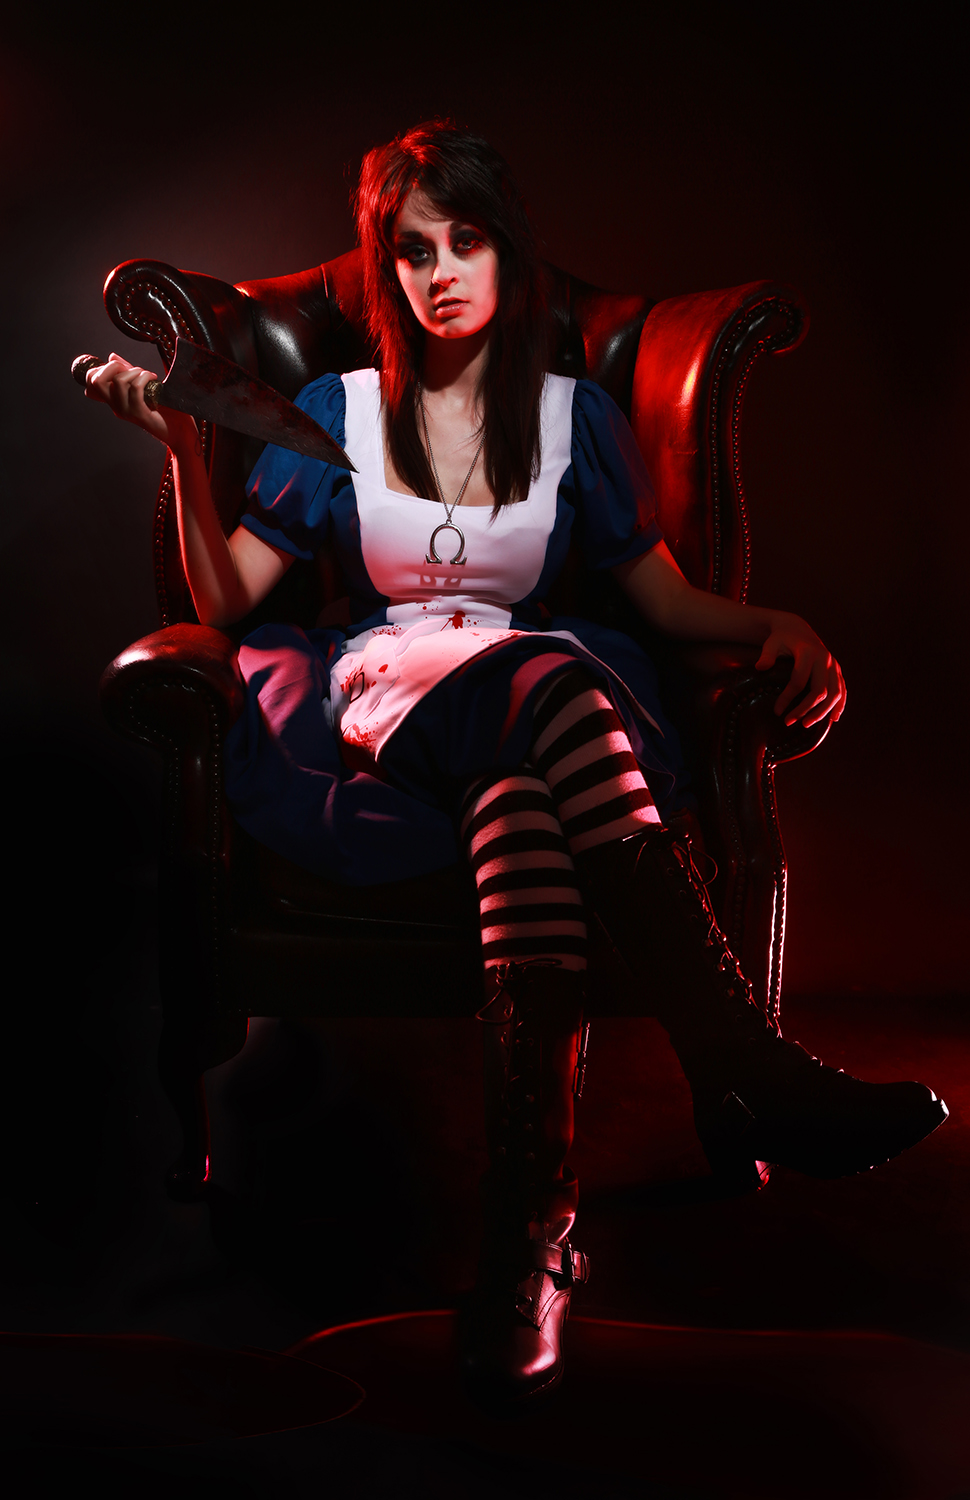 BlackorchidphotoCosplay8.jpg